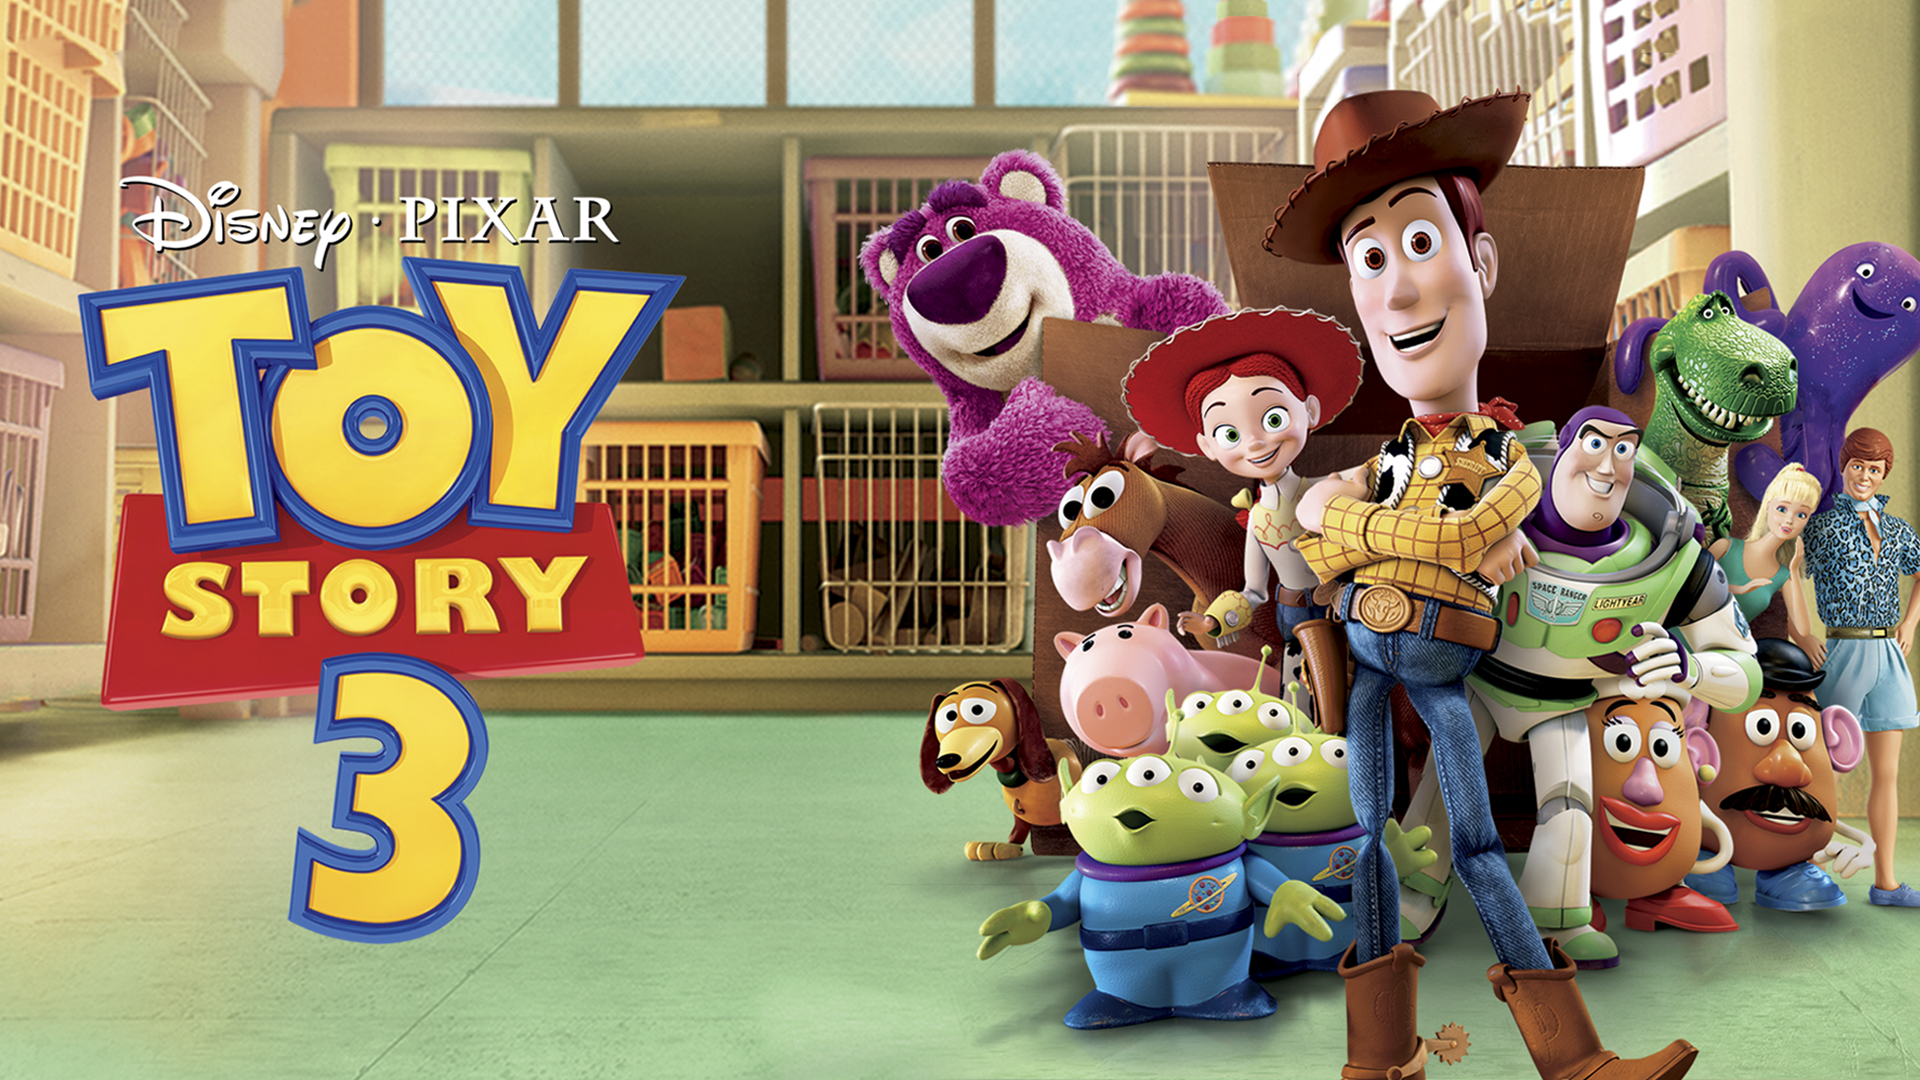 ... online free! The cast of characters includes returning favorites Woody  (Tom Hanks) and Buzz Lightyear (Tim Allen) as well as new faces  Lots-o'-Huggin' ...